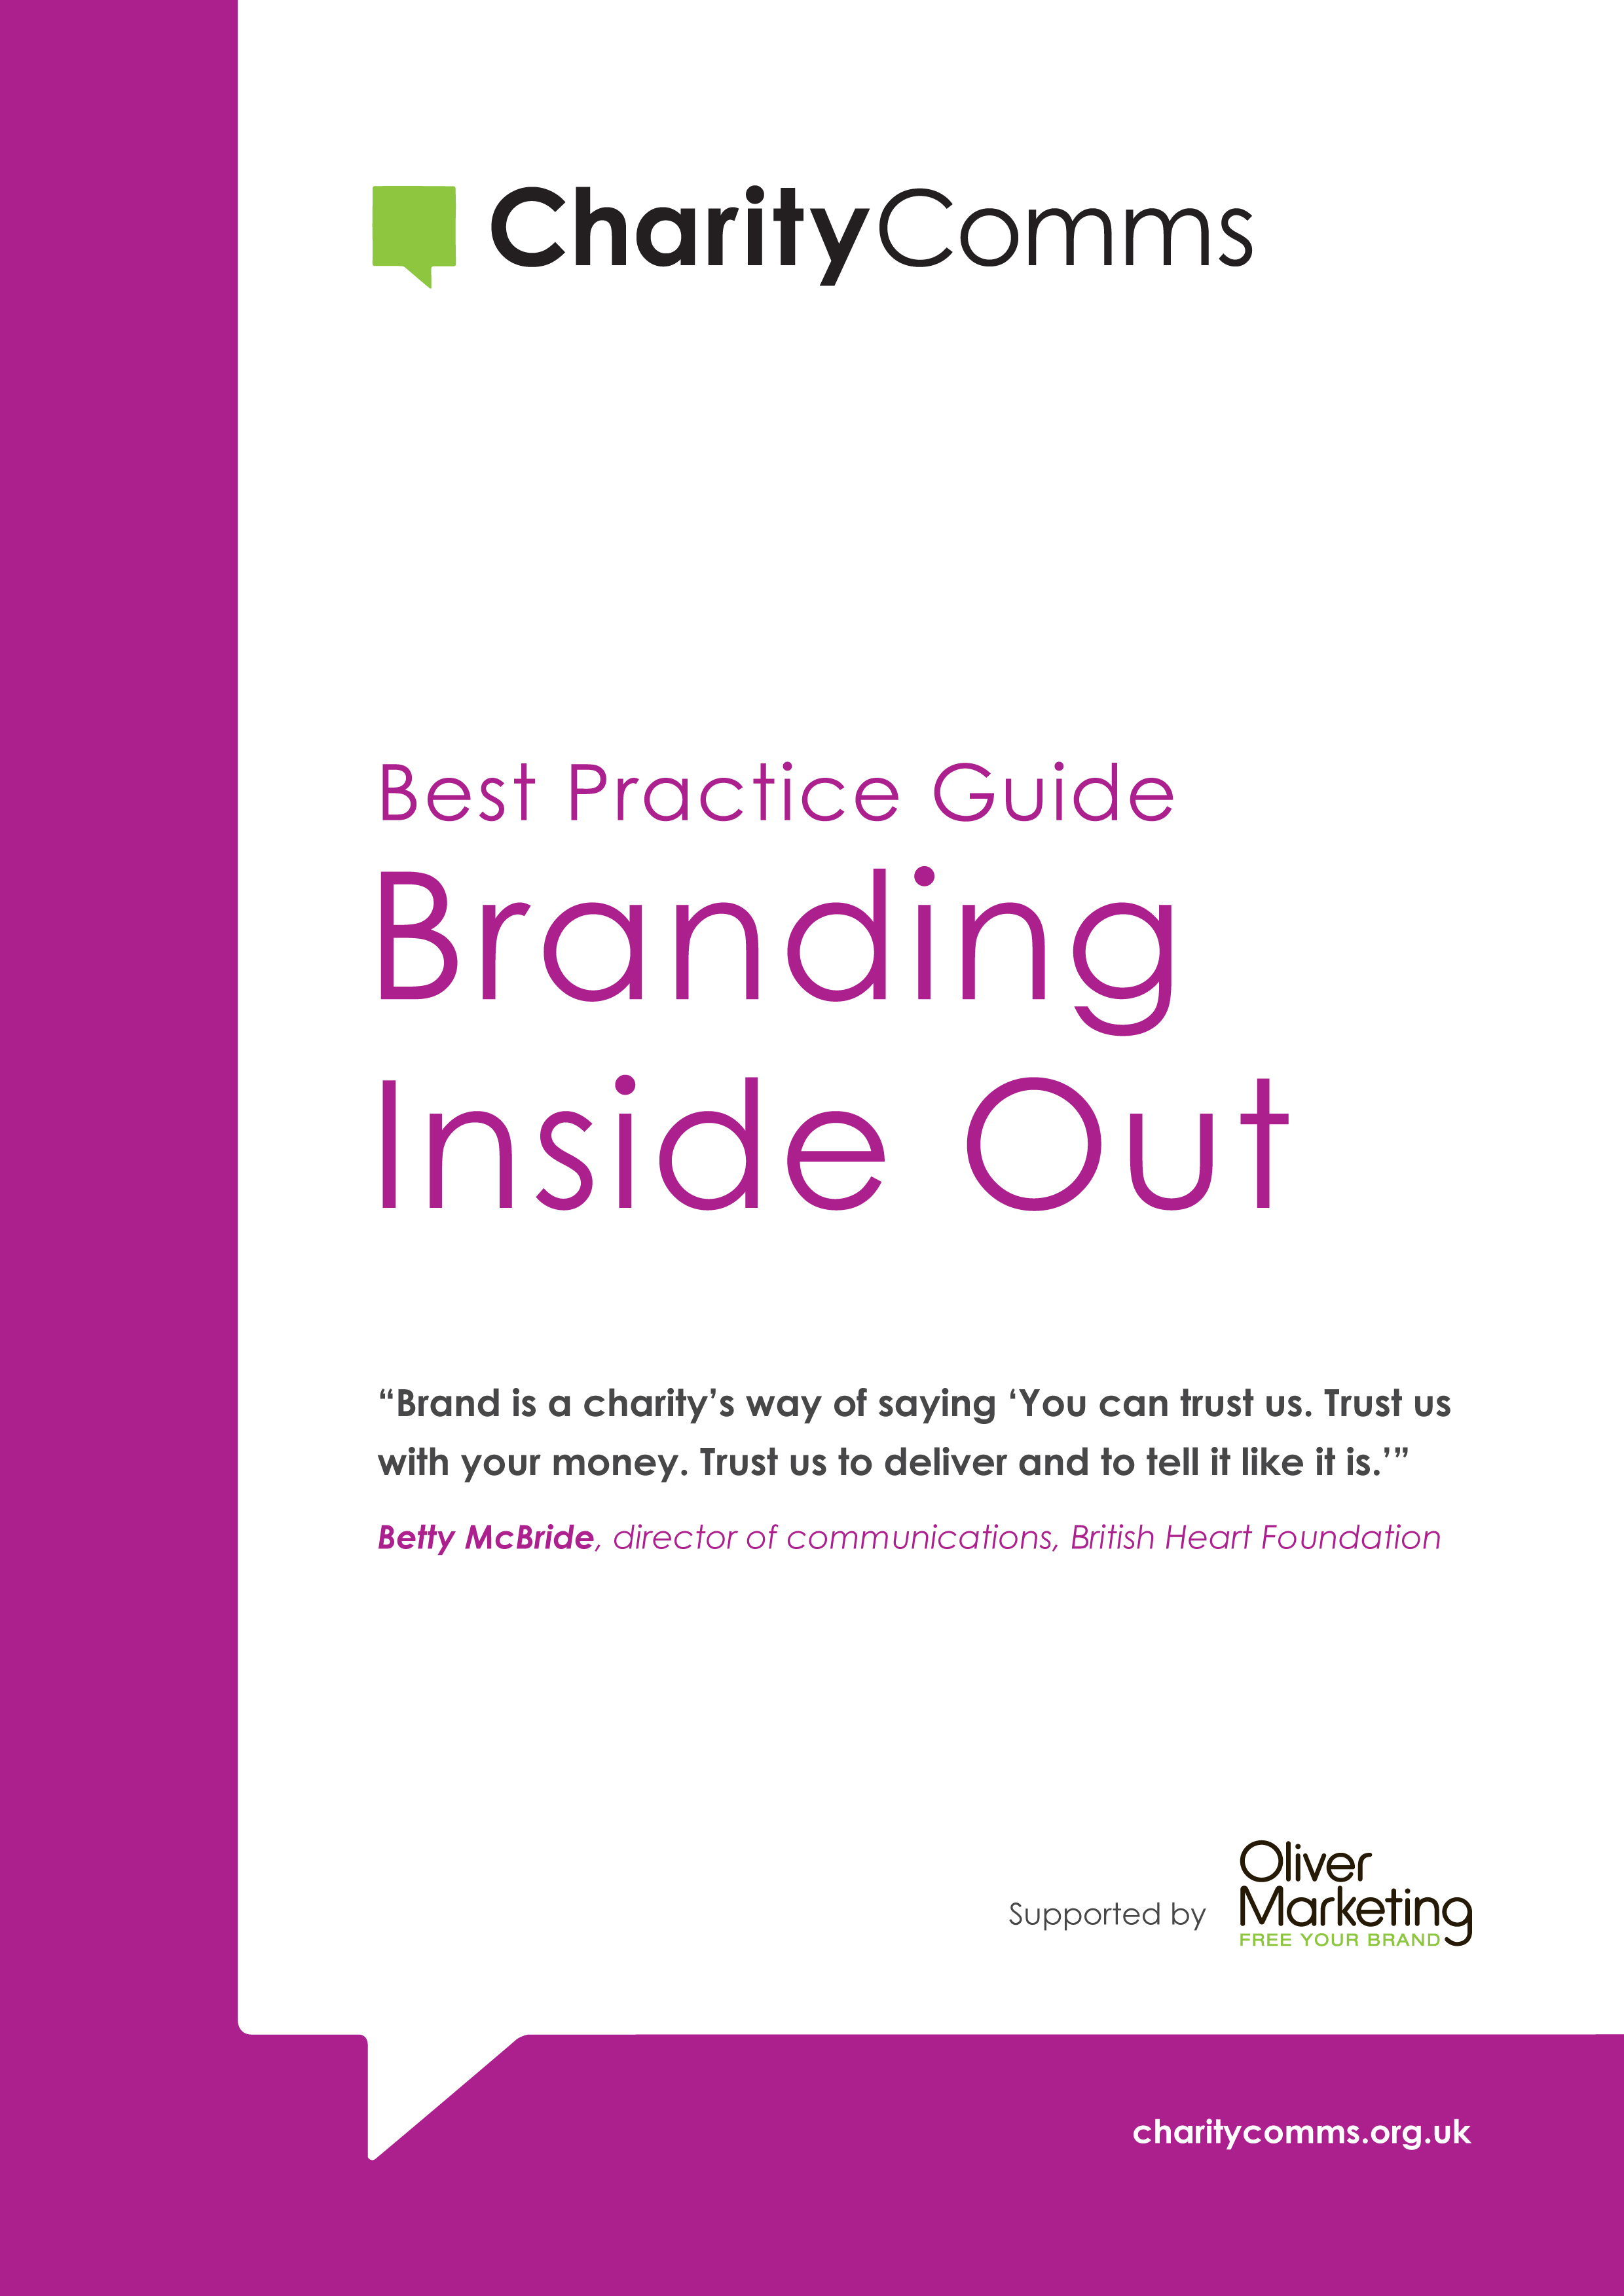 Branding Inside Out: a Best Practice Guide